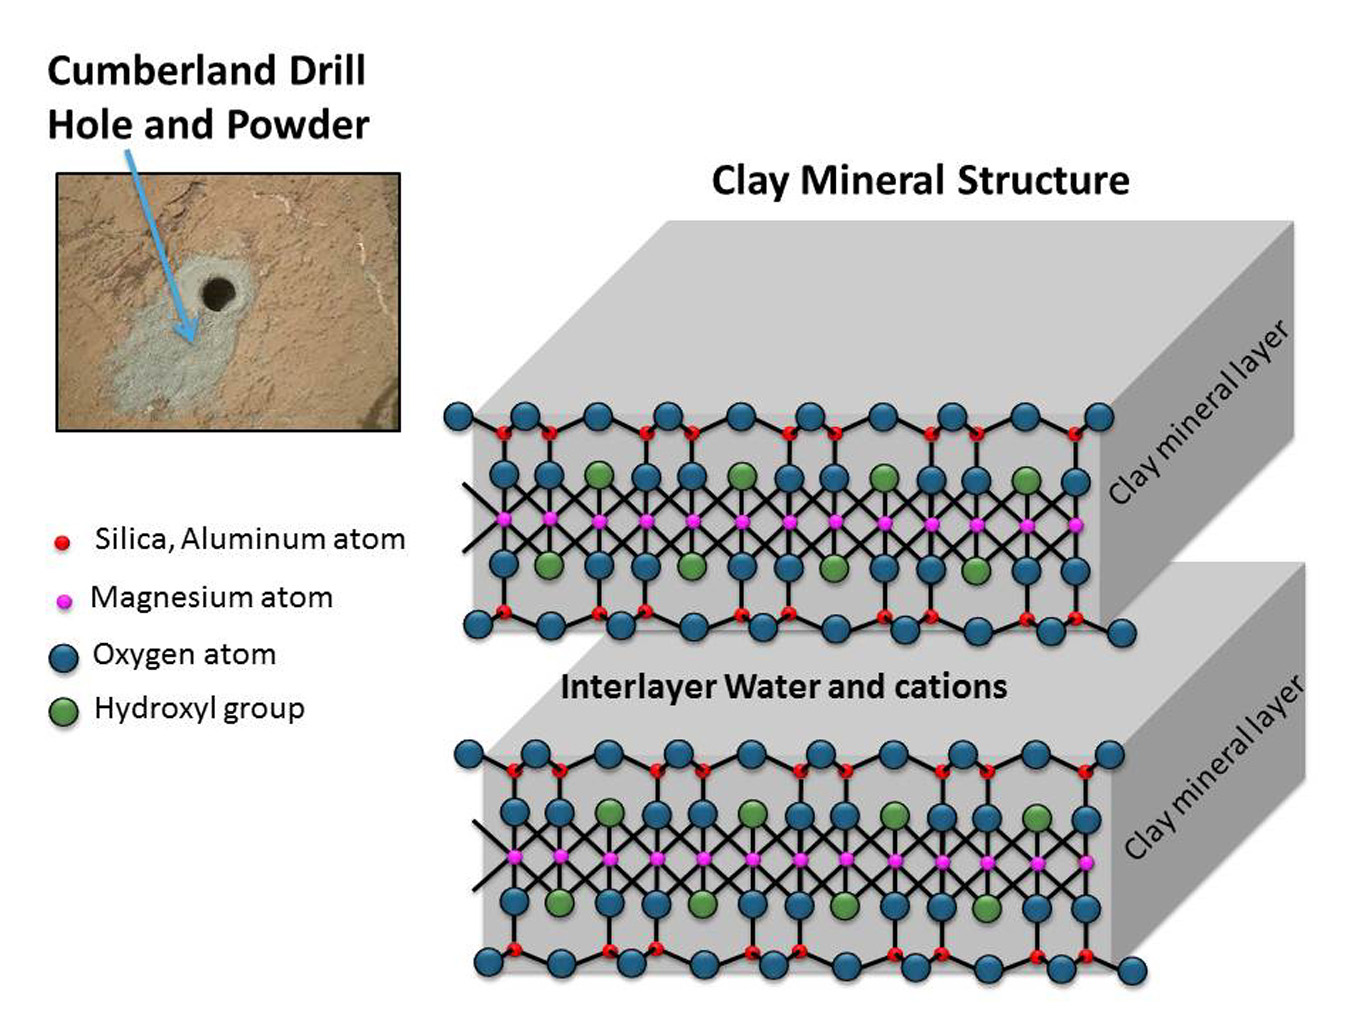 curiosity rover diagram 1995 ford ranger wiper wiring space images | clay mineral structure similar to clays observed in mudstone on mars